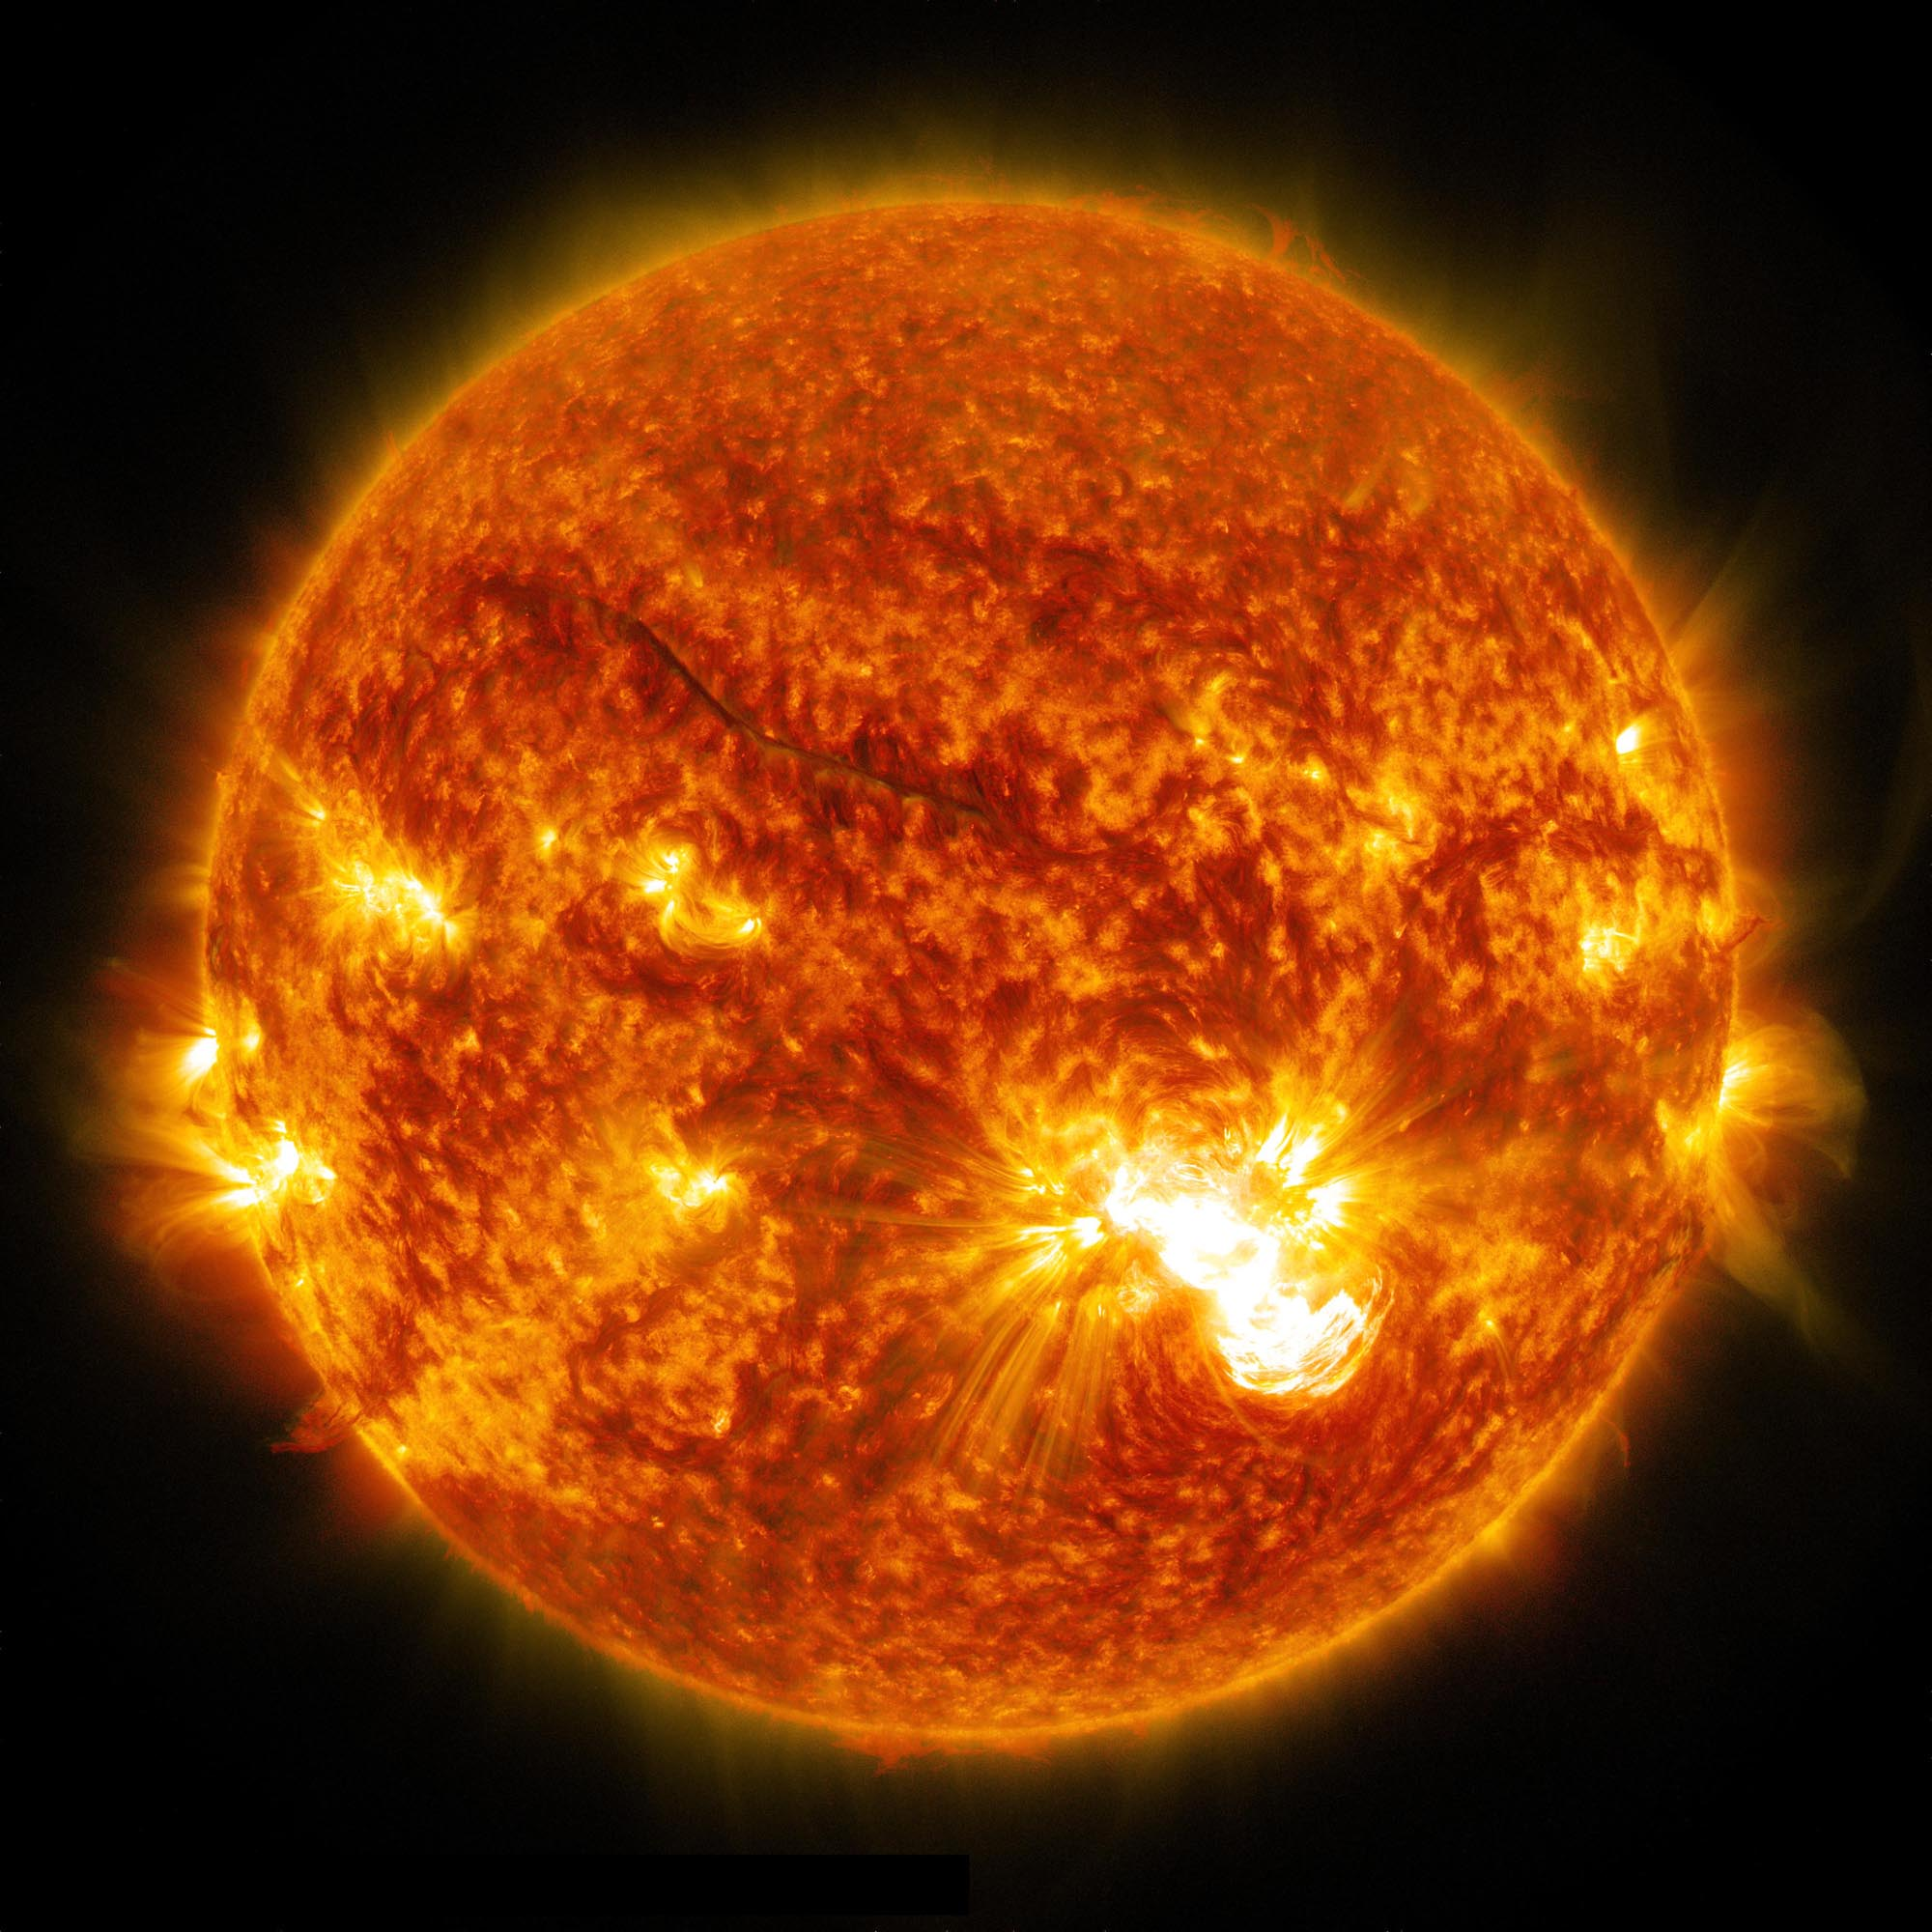 giant-sunspot-major-solar-flare-oct24-2014.jpg